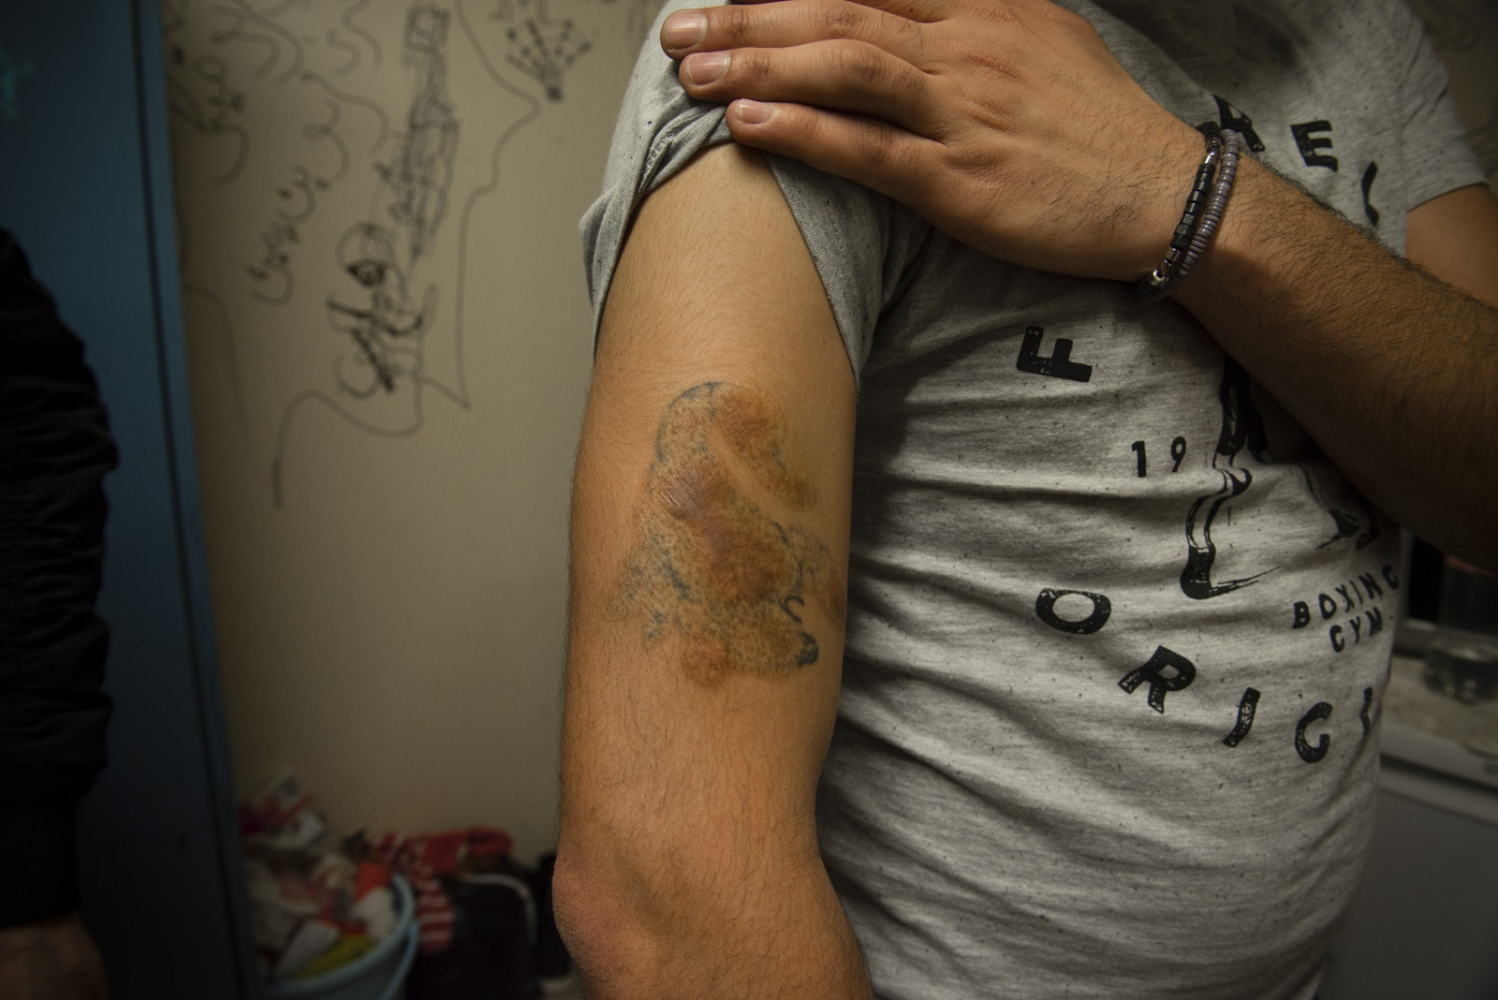 BERLIN| GERMANY | 2017-02-26| A syrian refugee shows his tattoo. The burns on his arm bear witness to tortures he tolerated while he was illegally kept in Assad's notorious prisons.